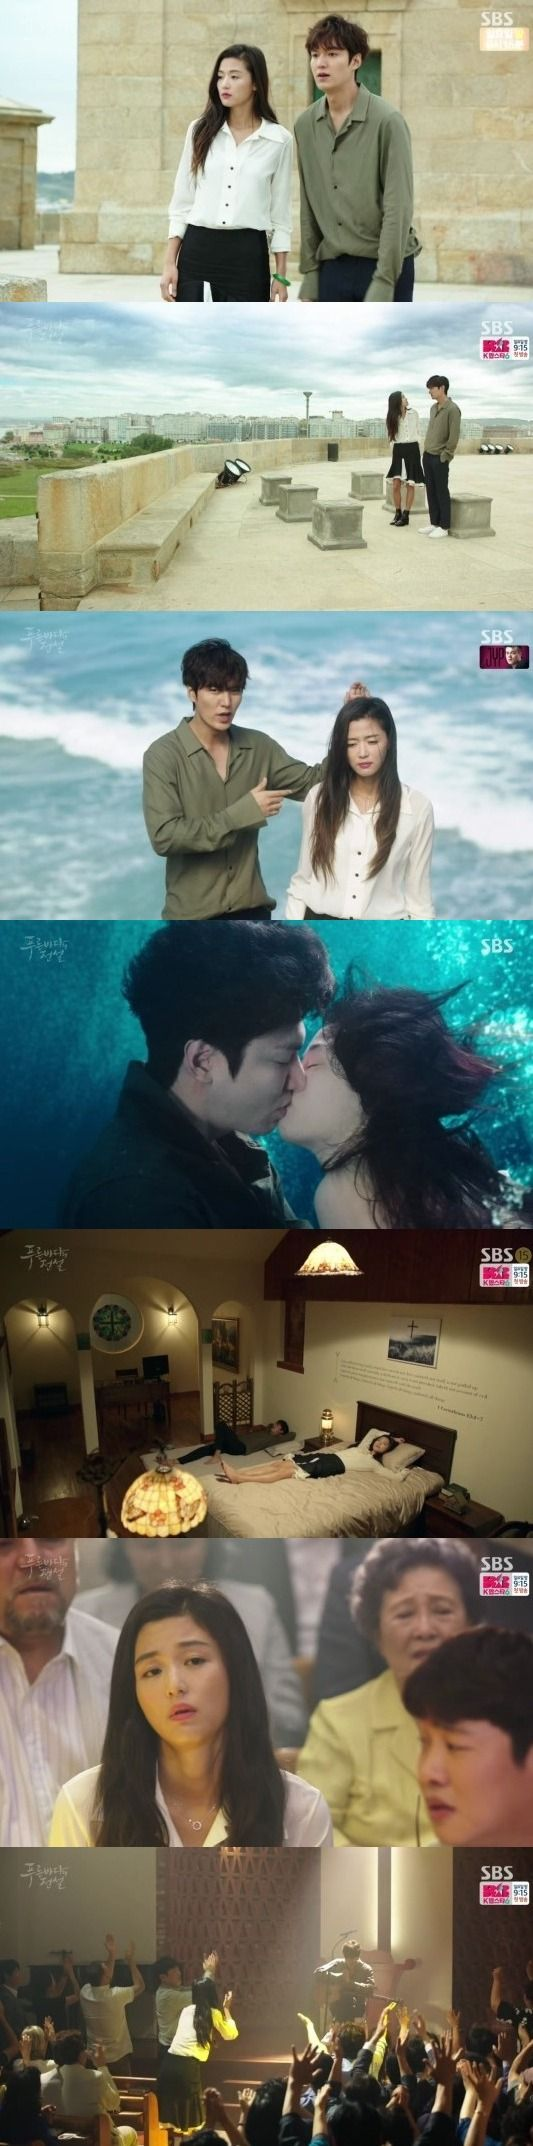 [Spoiler] Added episode 2 captures for the #kdrama 'The Legend of the Blue Sea'